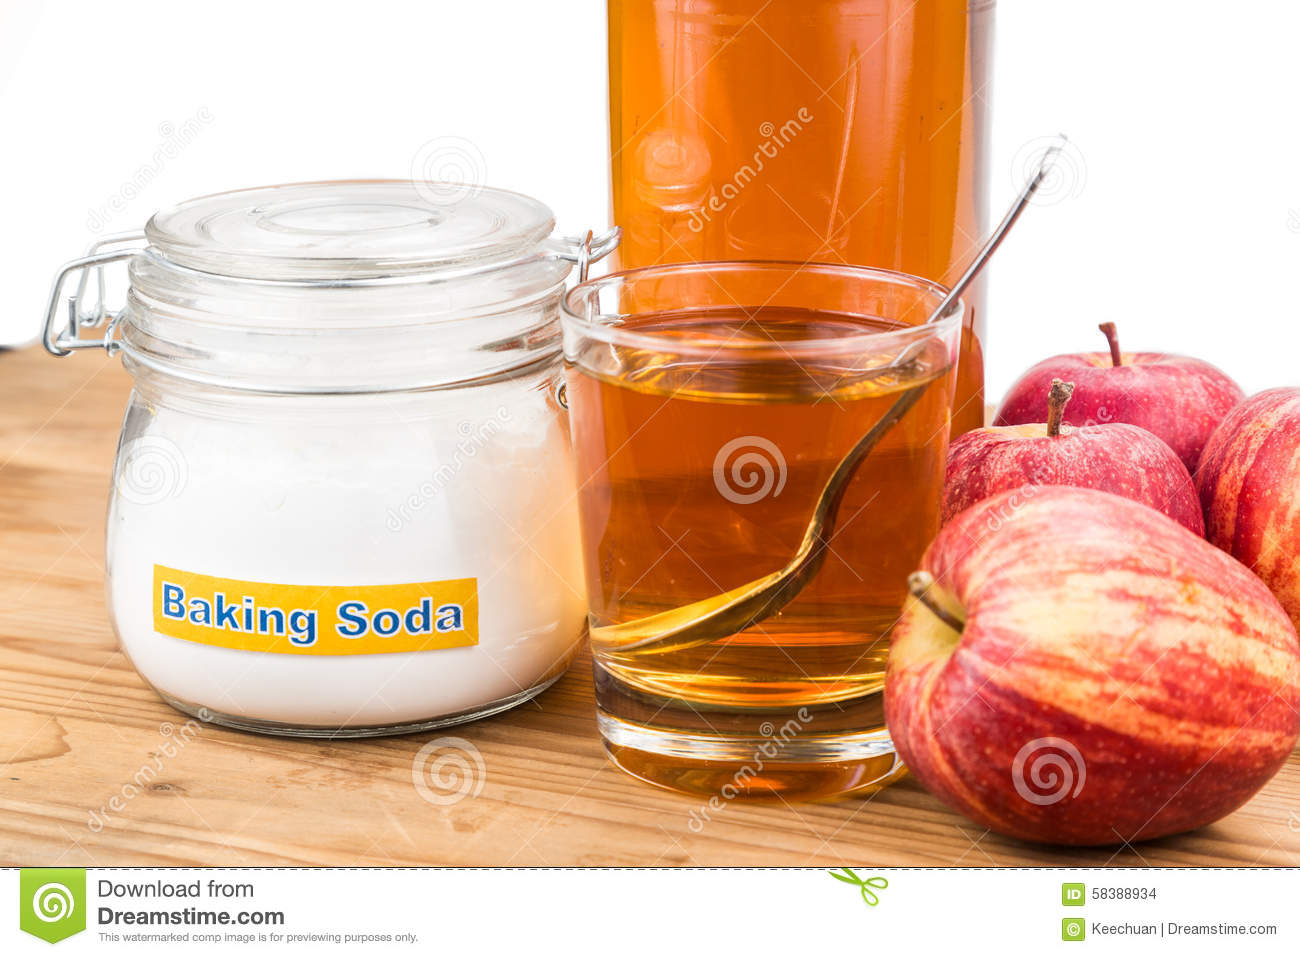 how to drink baking soda for reflux